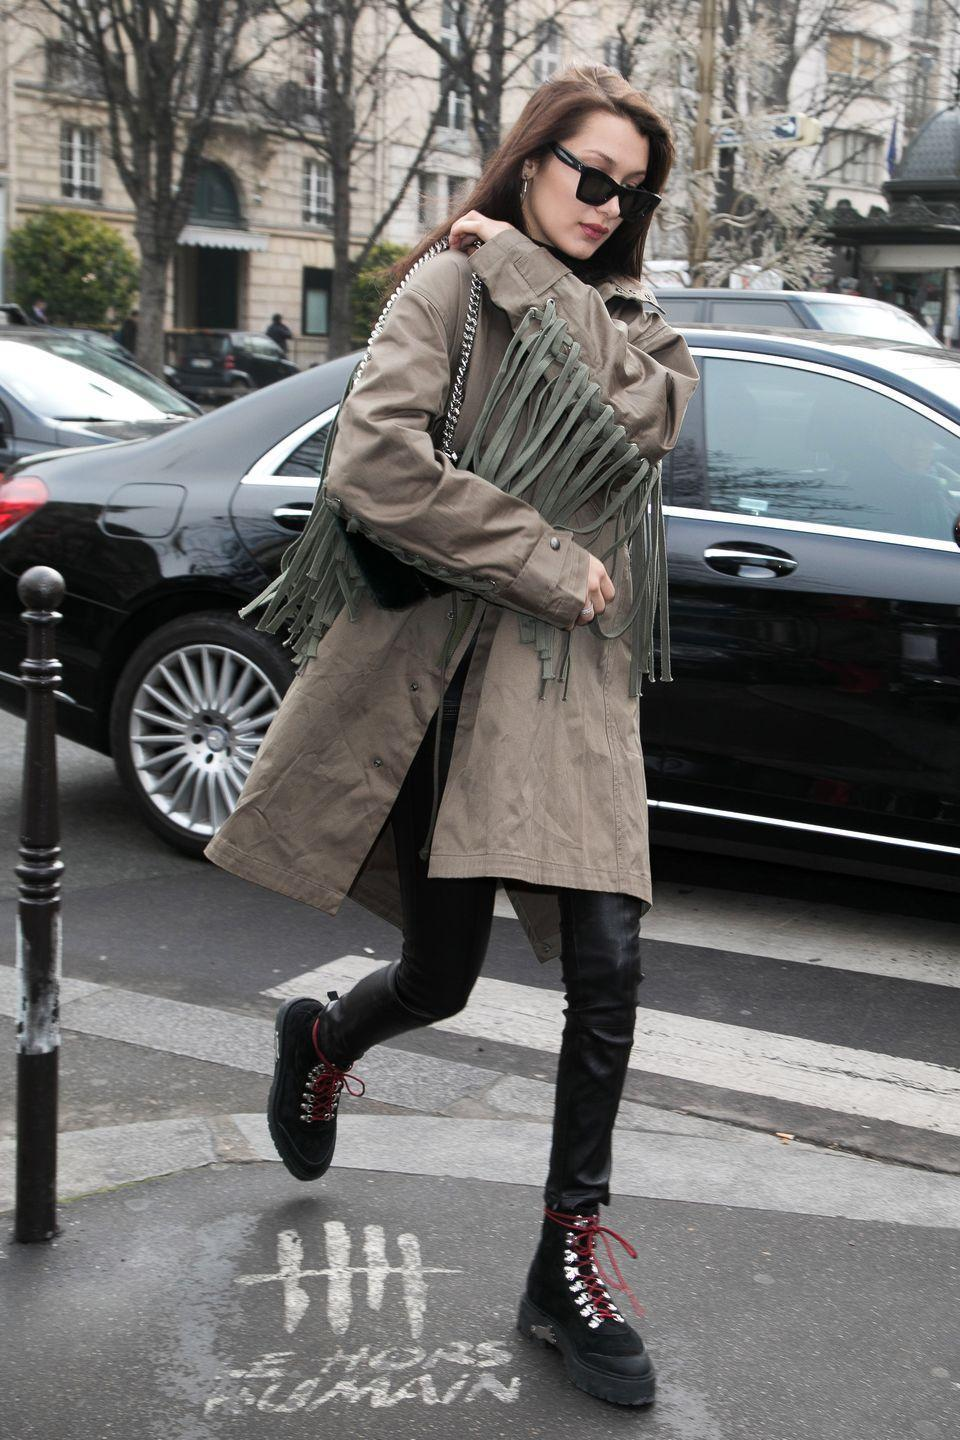 <p>In a fringed cargo jacket, leather jeans, lace-up combat boots and sunglasses while out in Paris.</p>